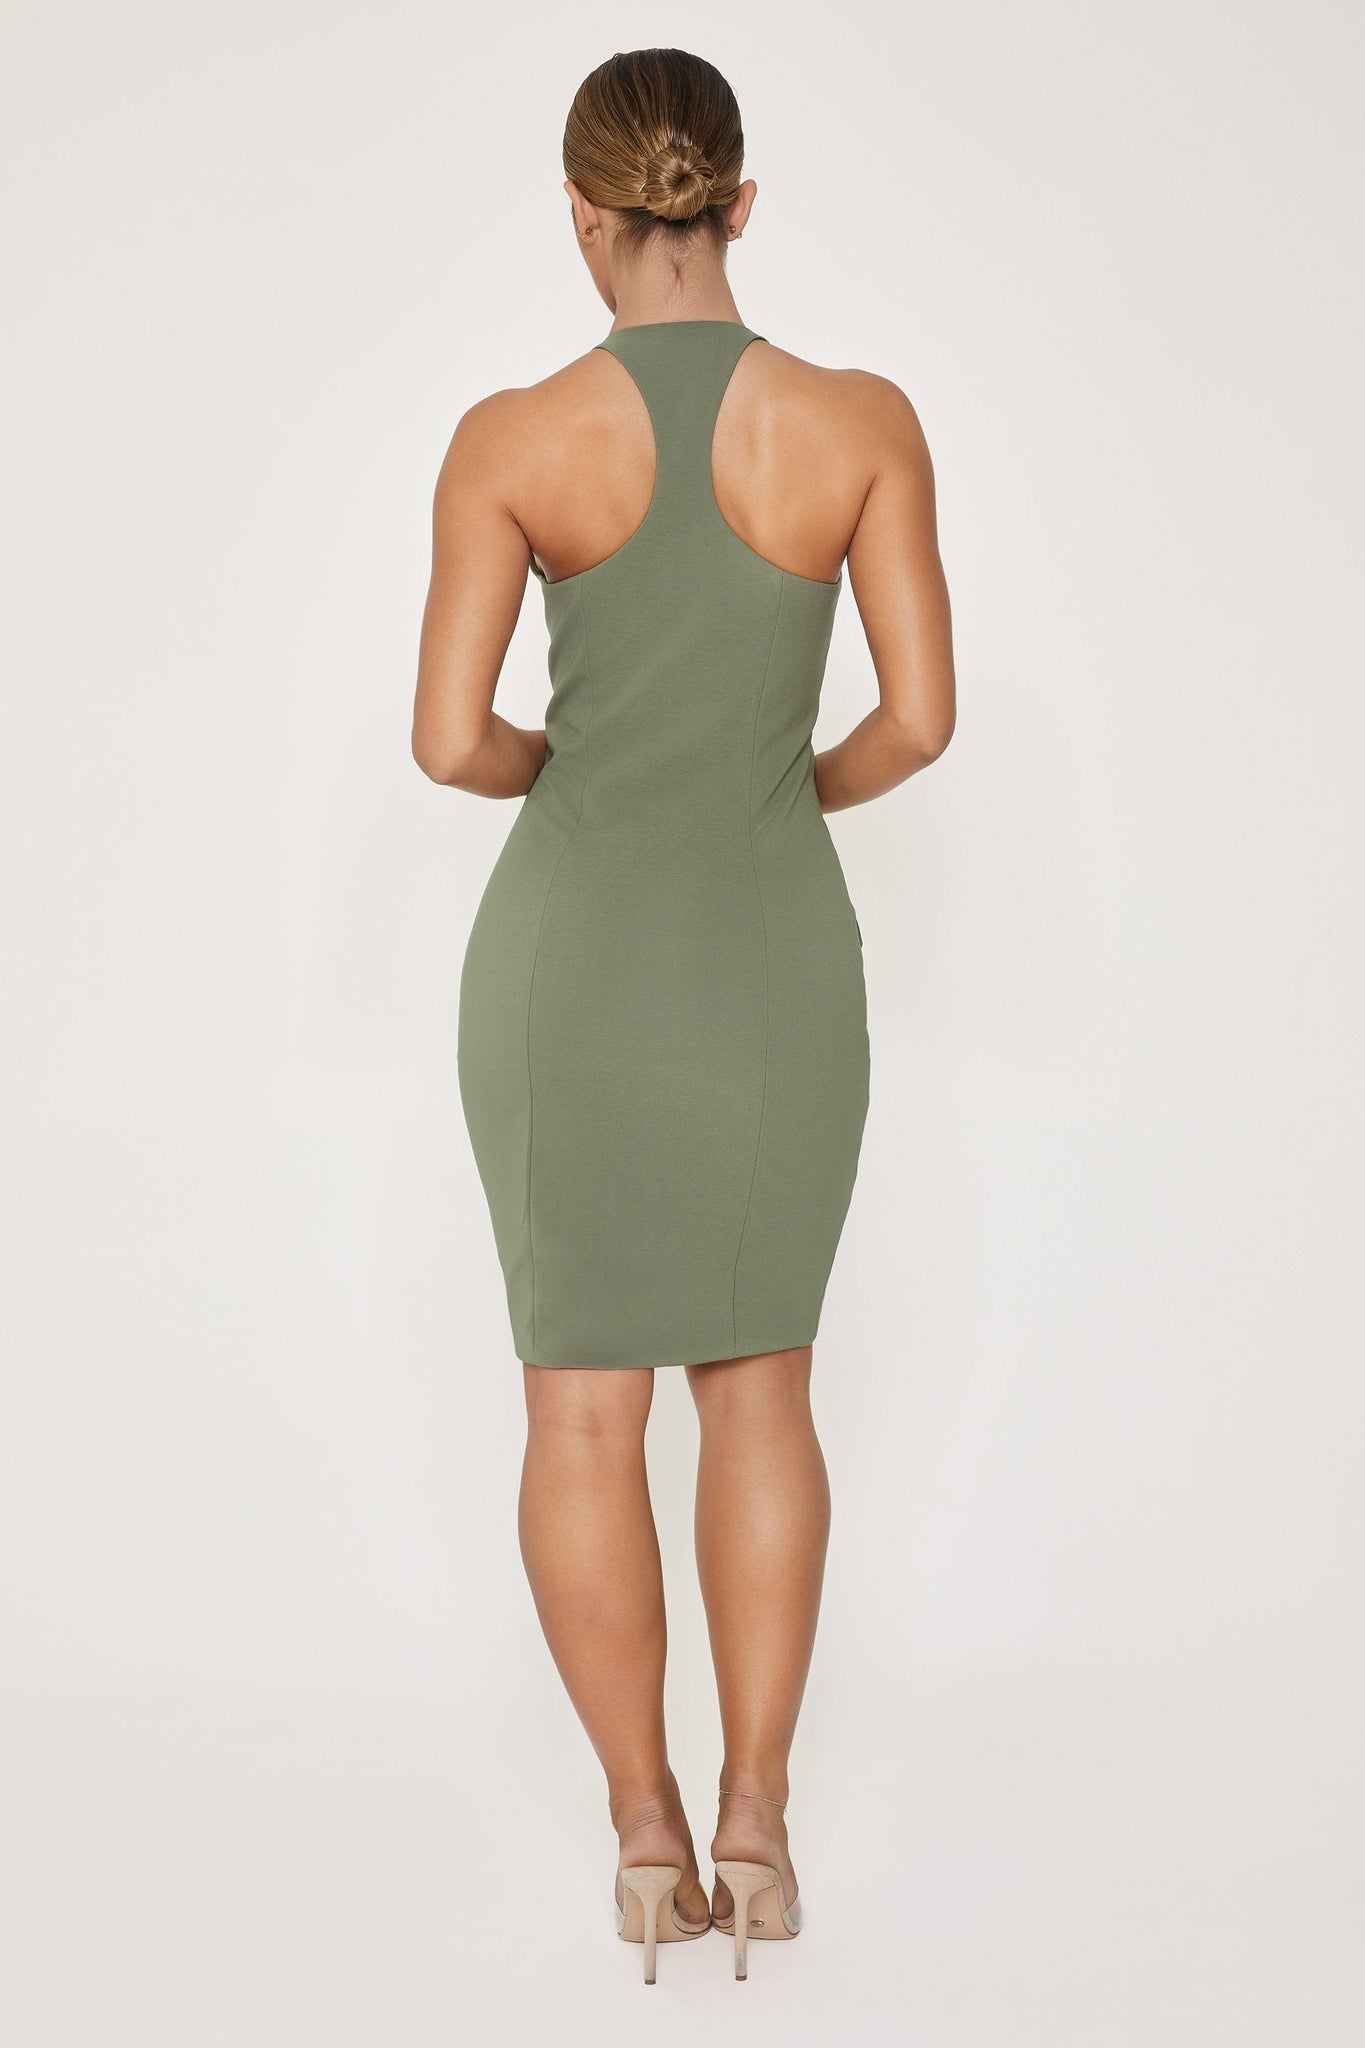 Delta Cargo Mini Dress - Khaki - MESHKI